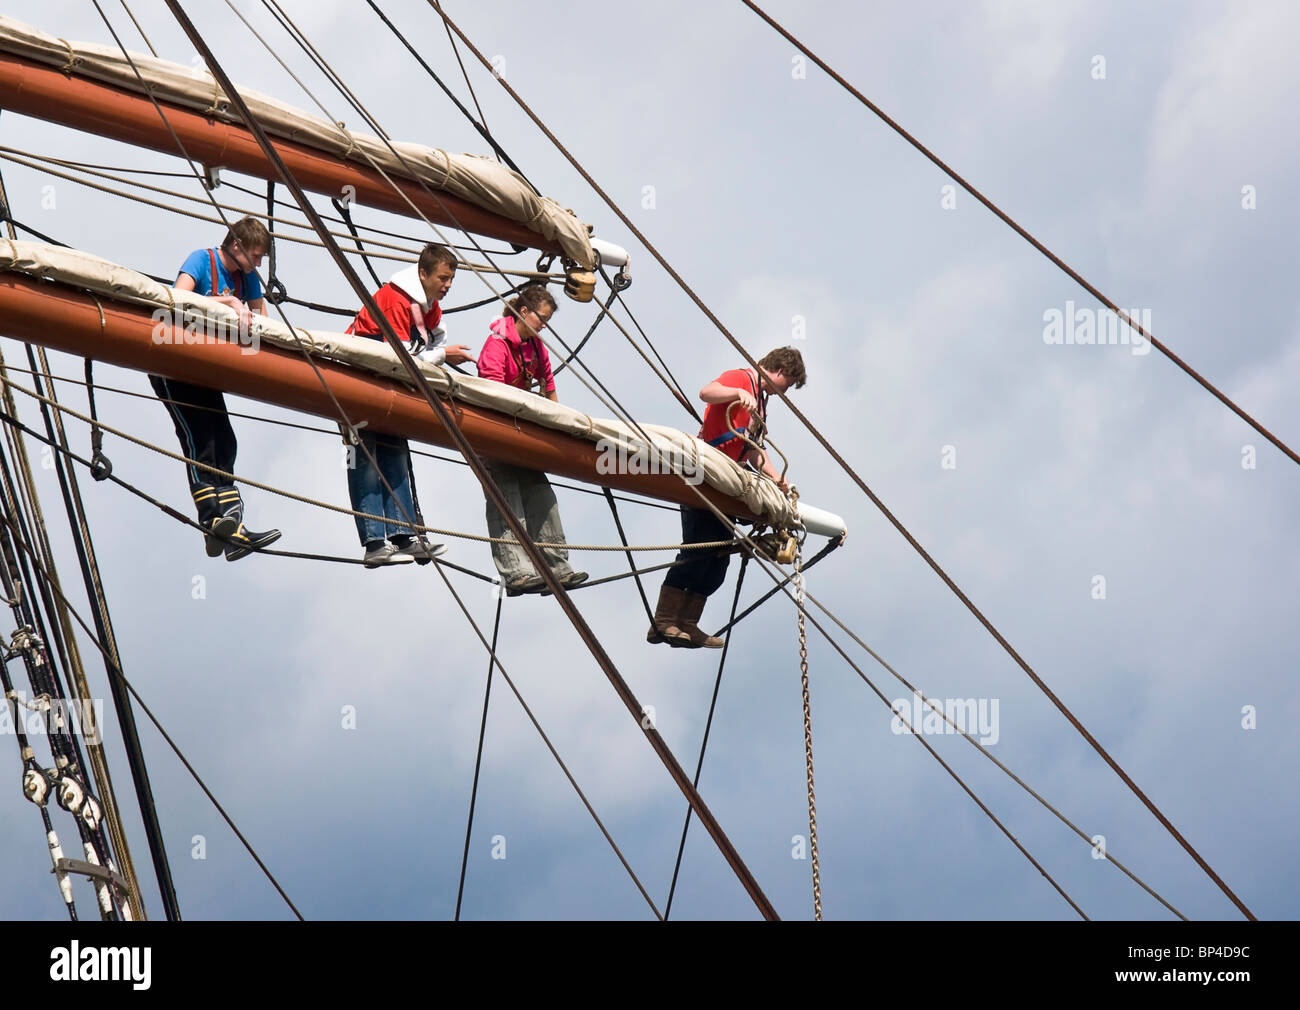 Members of the crew of a square rigged sailing ship working on the middle spar of one of the masts. - Stock Image